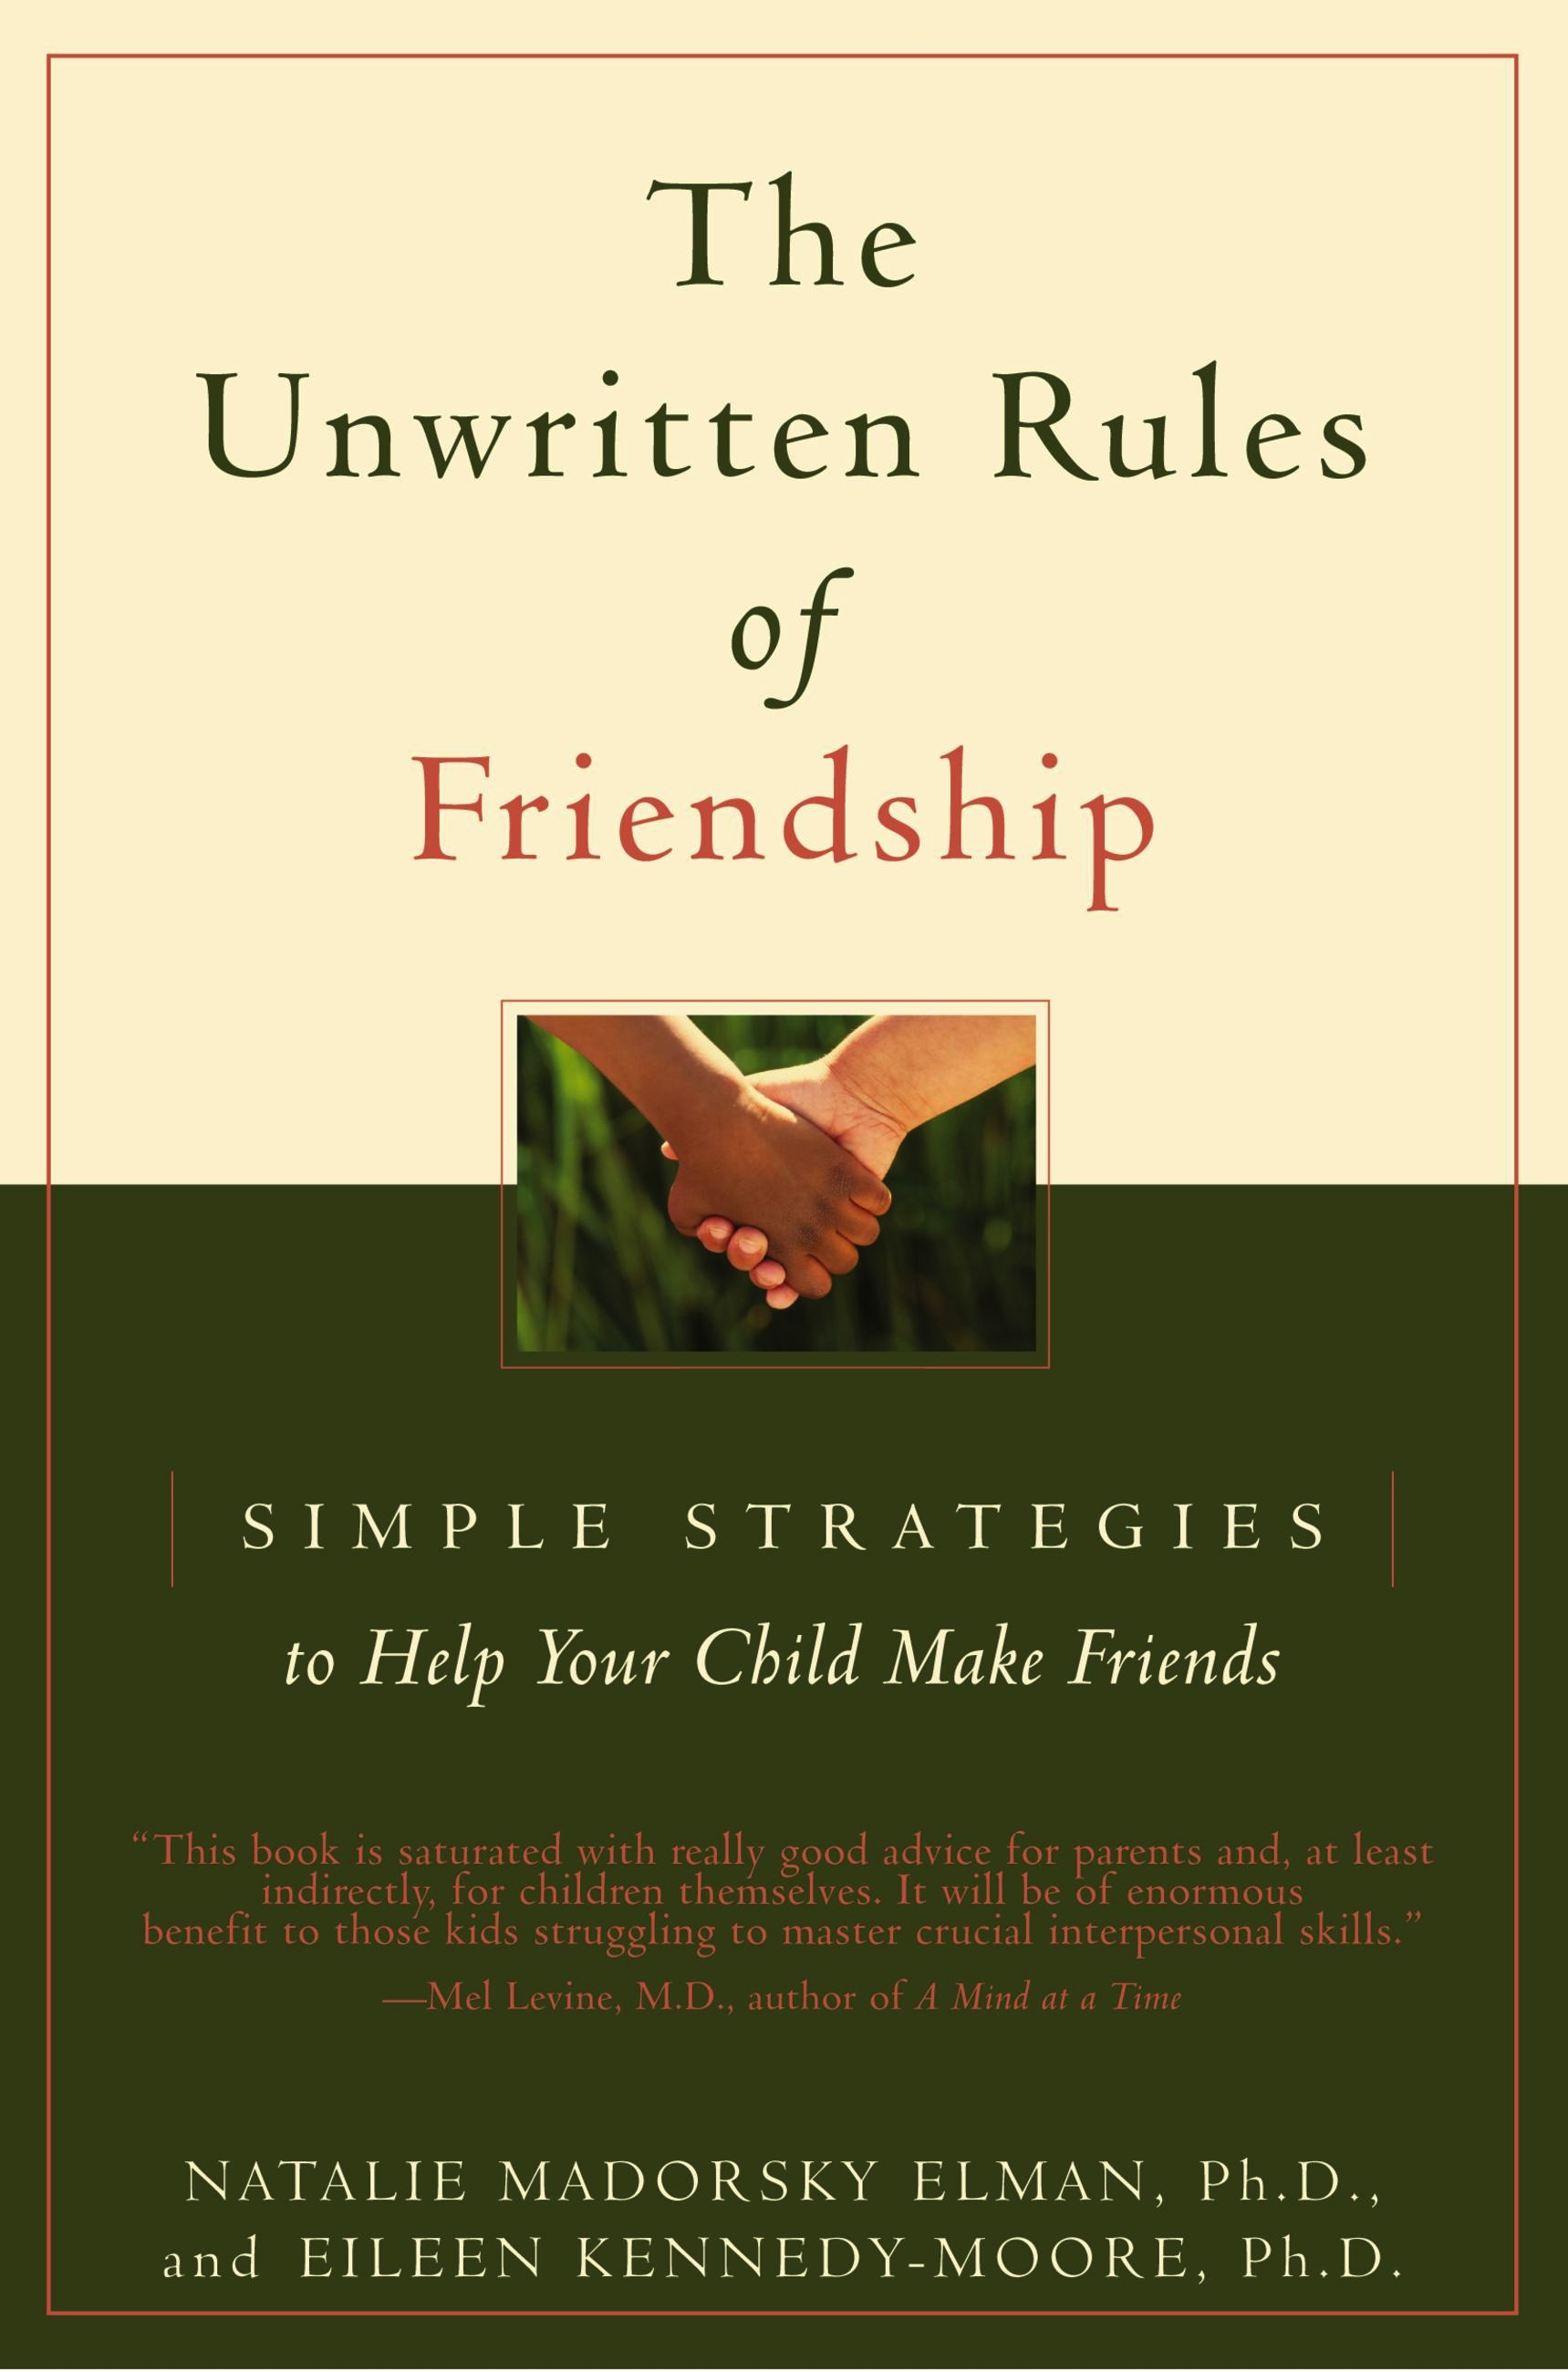 Unwritten Rules of Friendship, The